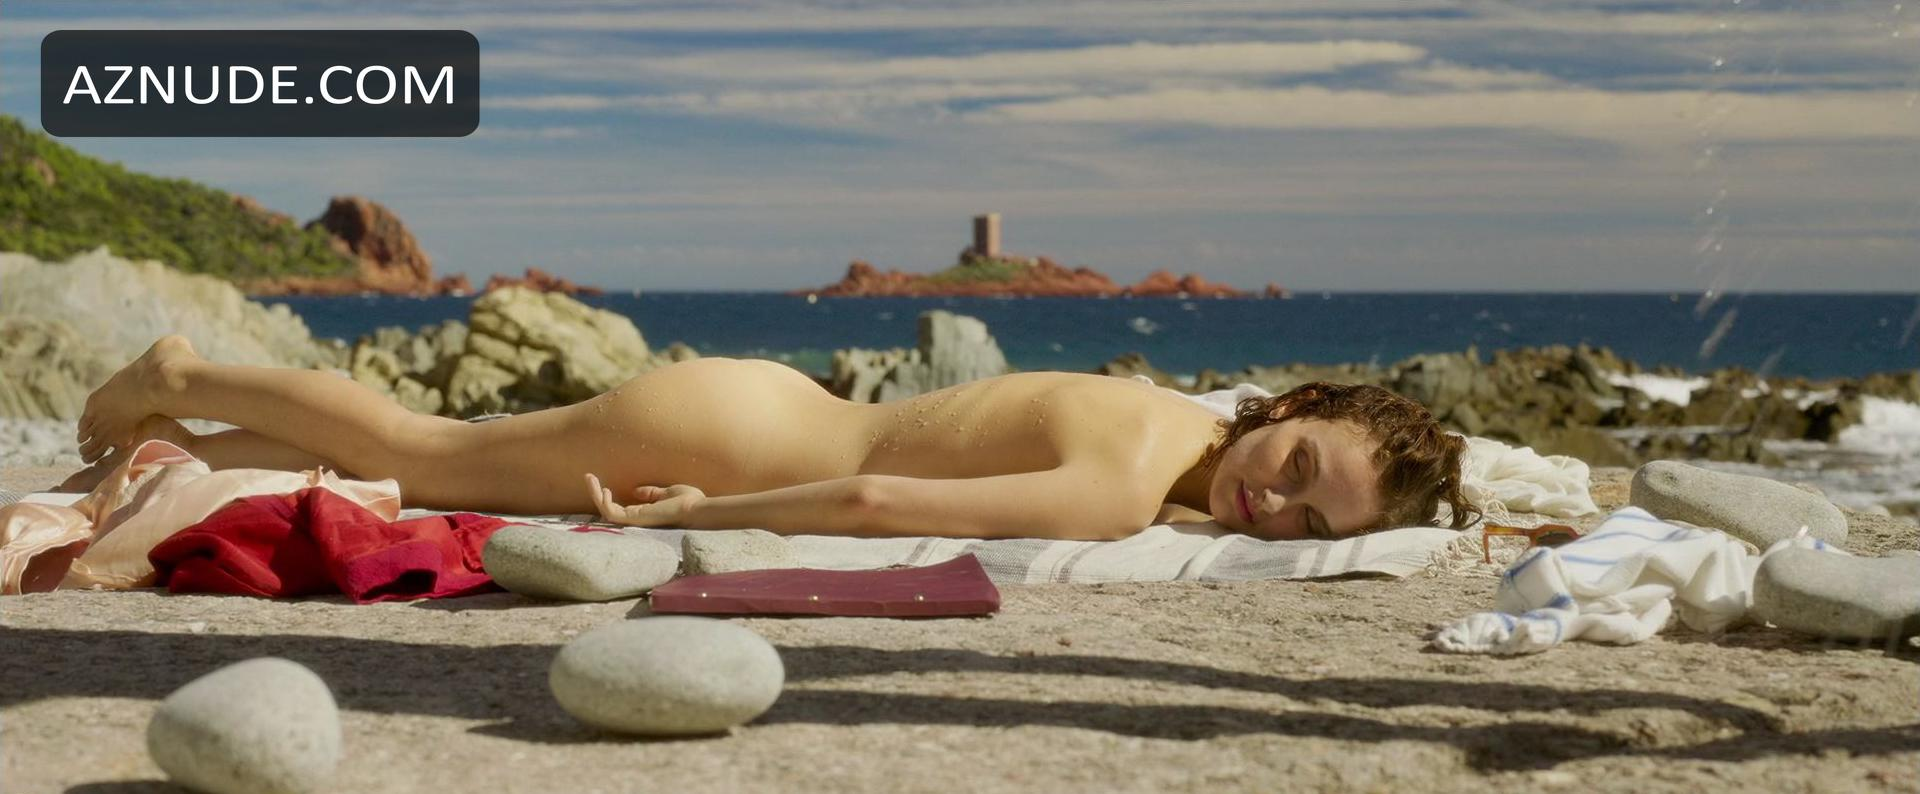 from Cade scenes from nude beach